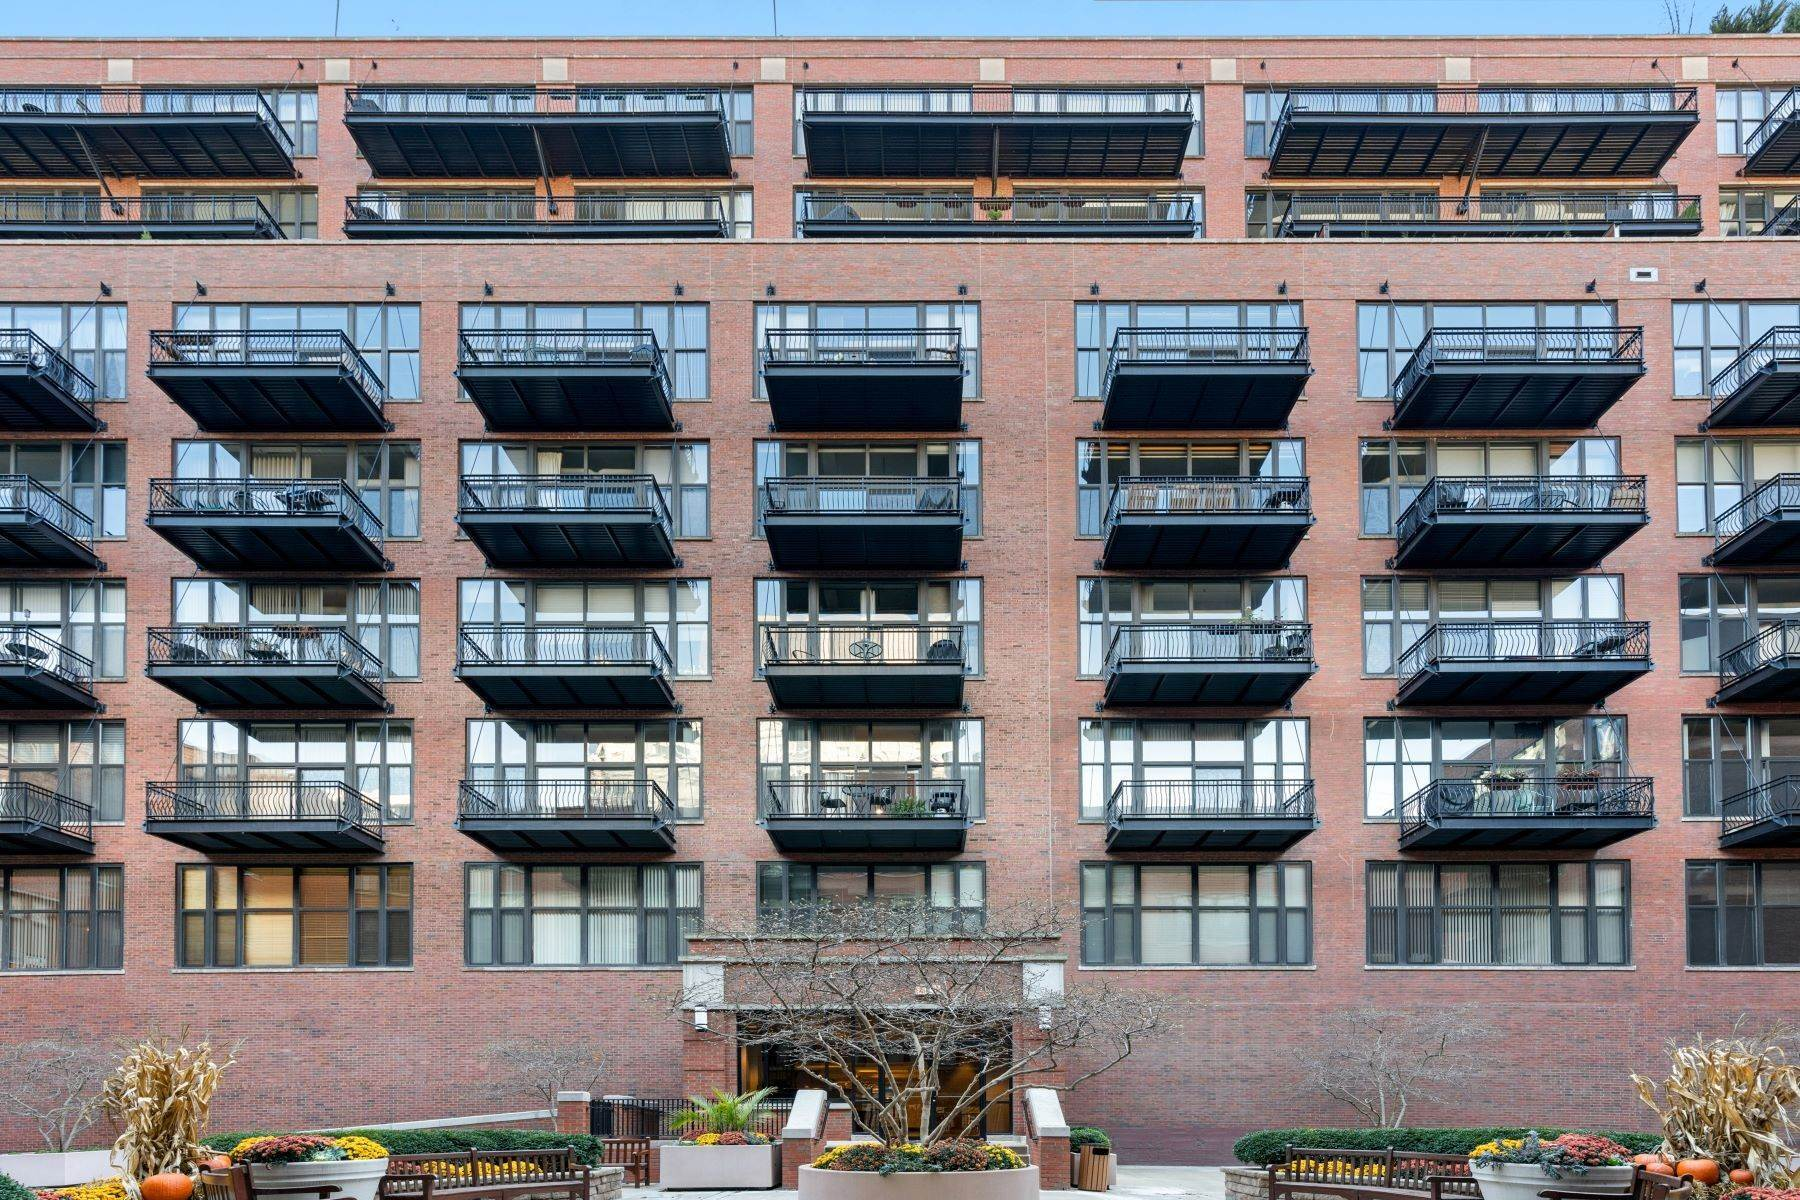 Property for Sale at Fully Renovated Loft 333 W Hubbard Street, Unit 422 Chicago, Illinois 60654 United States